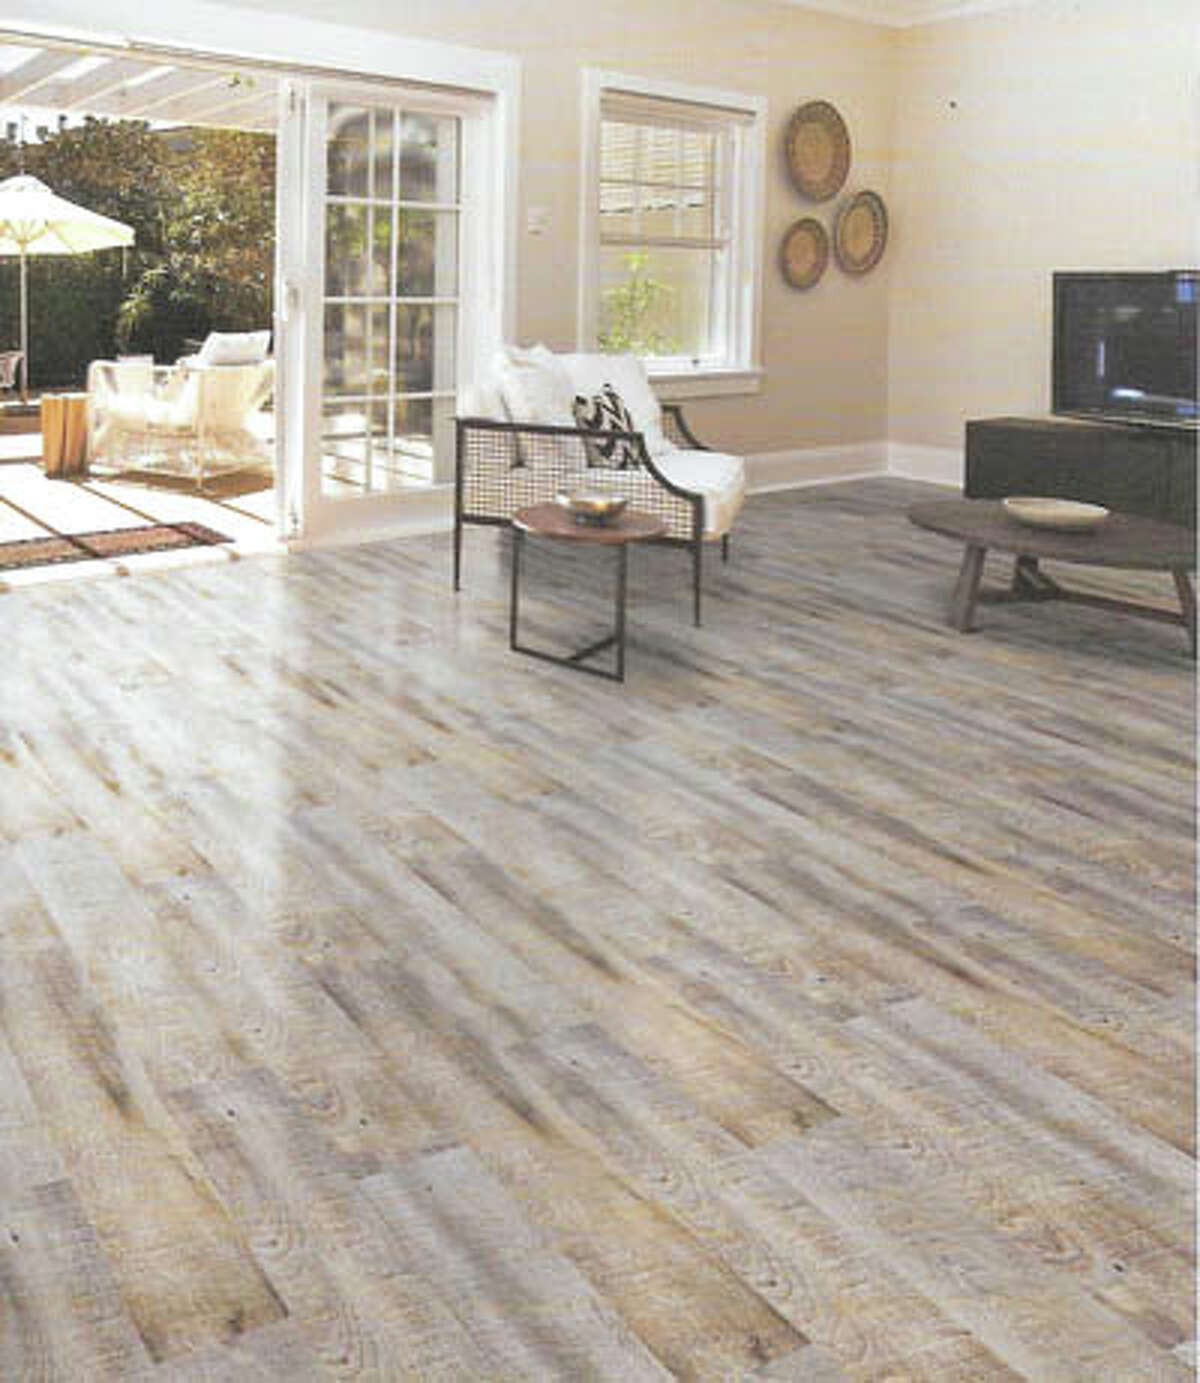 This vinyl flooring captures the rich look of real wood, right down to the texture. But it's low maintenance, long-wearing vinyl instead. See the Southwind collection at Southwest Floors, 1113 Andrews Highway, this week.